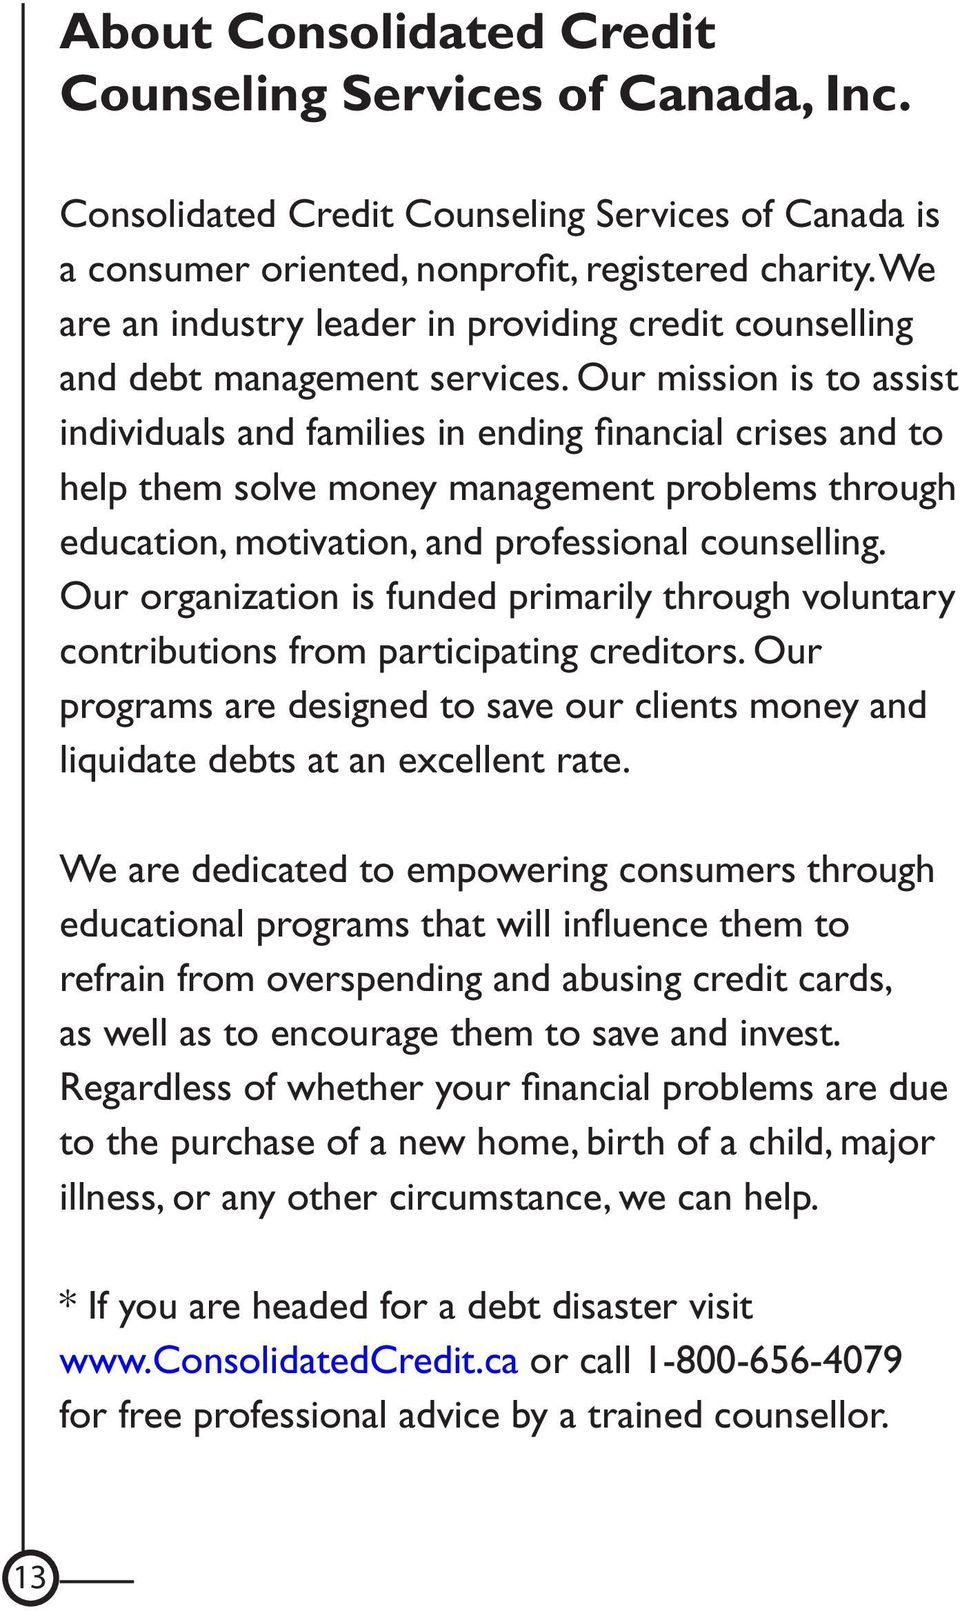 Our mission is to assist individuals and families in ending financial crises and to help them solve money management problems through education, motivation, and professional counselling.